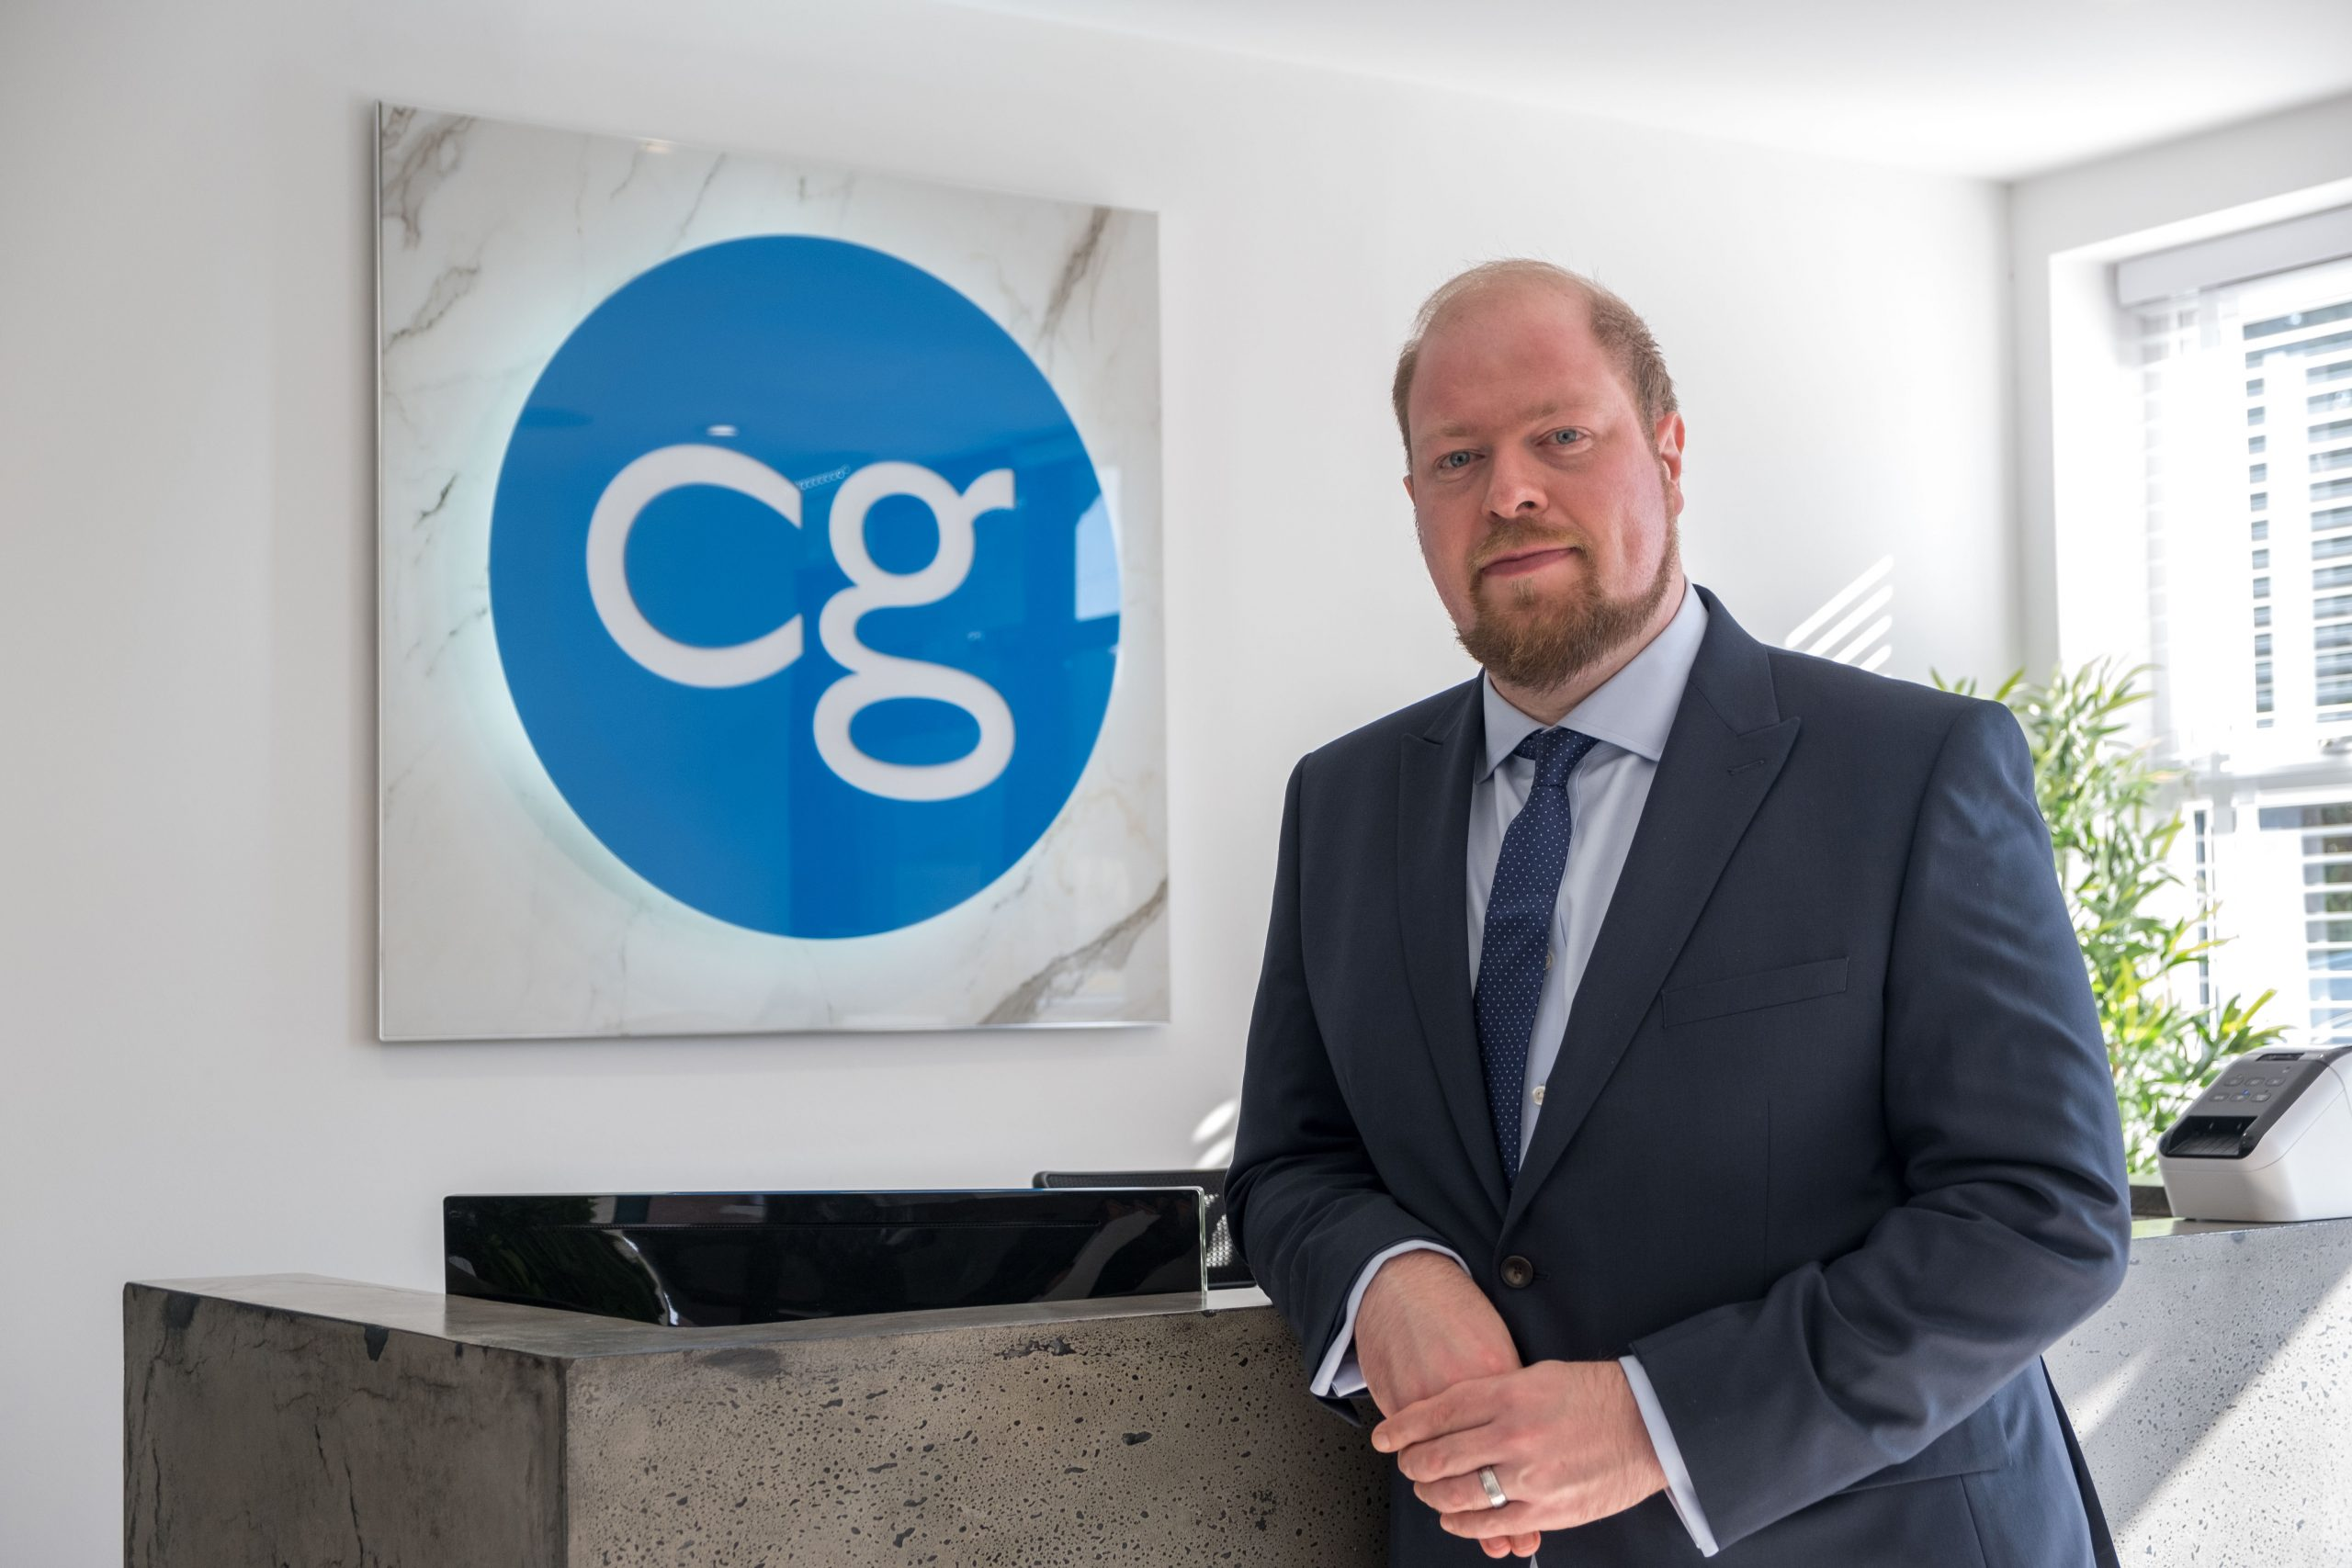 Tom Price Joins CG Professional